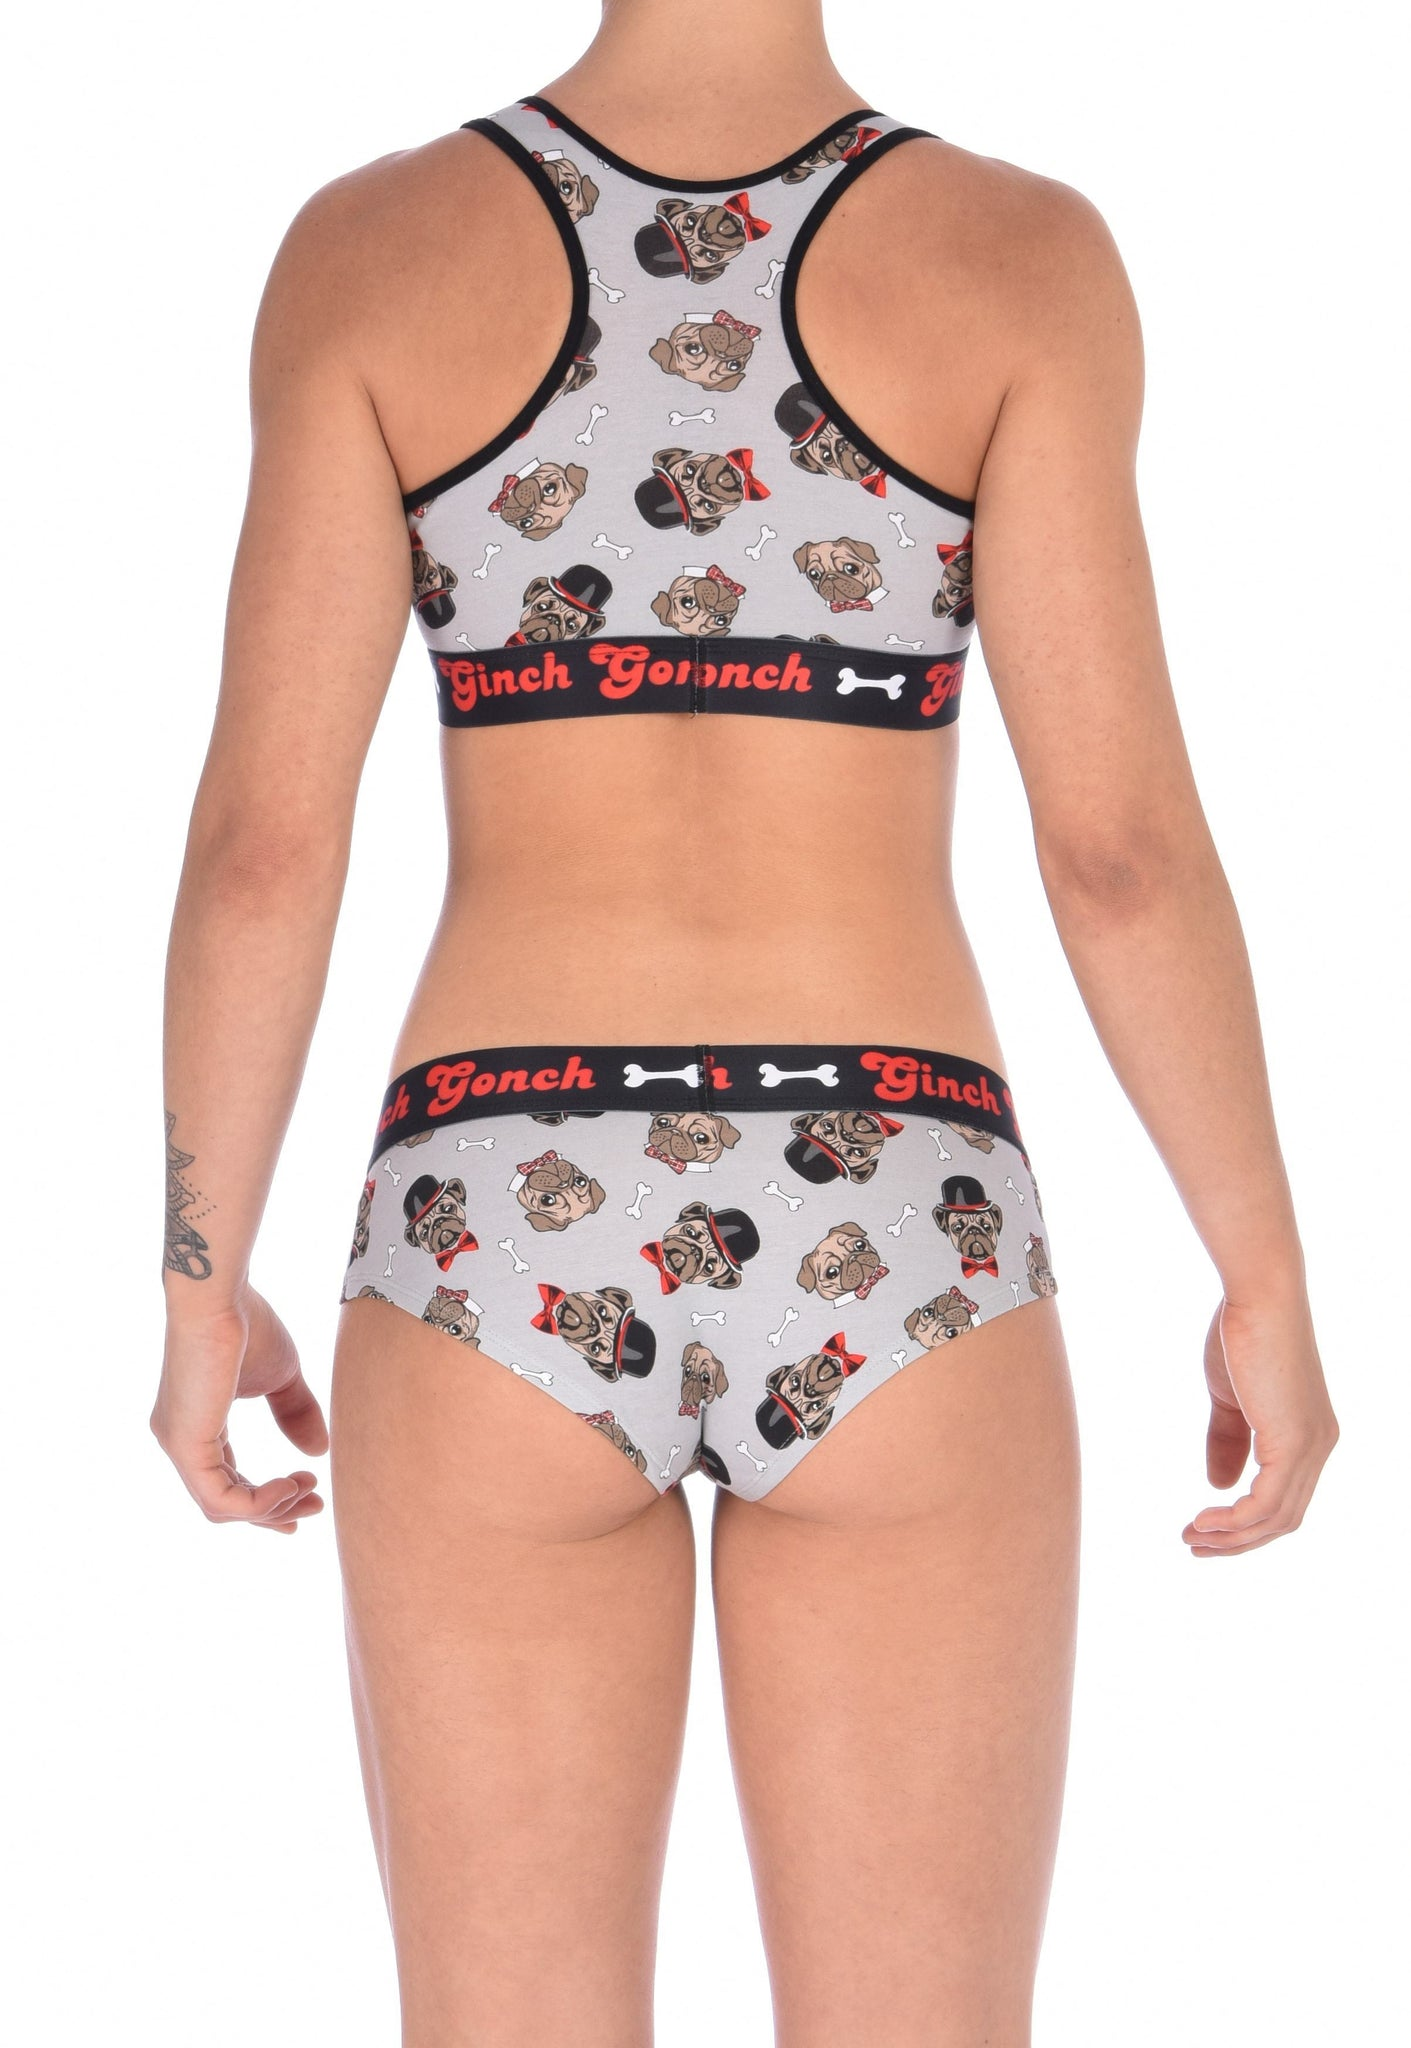 GG Ginch Gonch Pug Life boy cut brief cheeky gogo - women's Underwear grey background with pugs with top hats and bow ties and bones. Black trim with black printed waistband back. Shown with matching sports bra